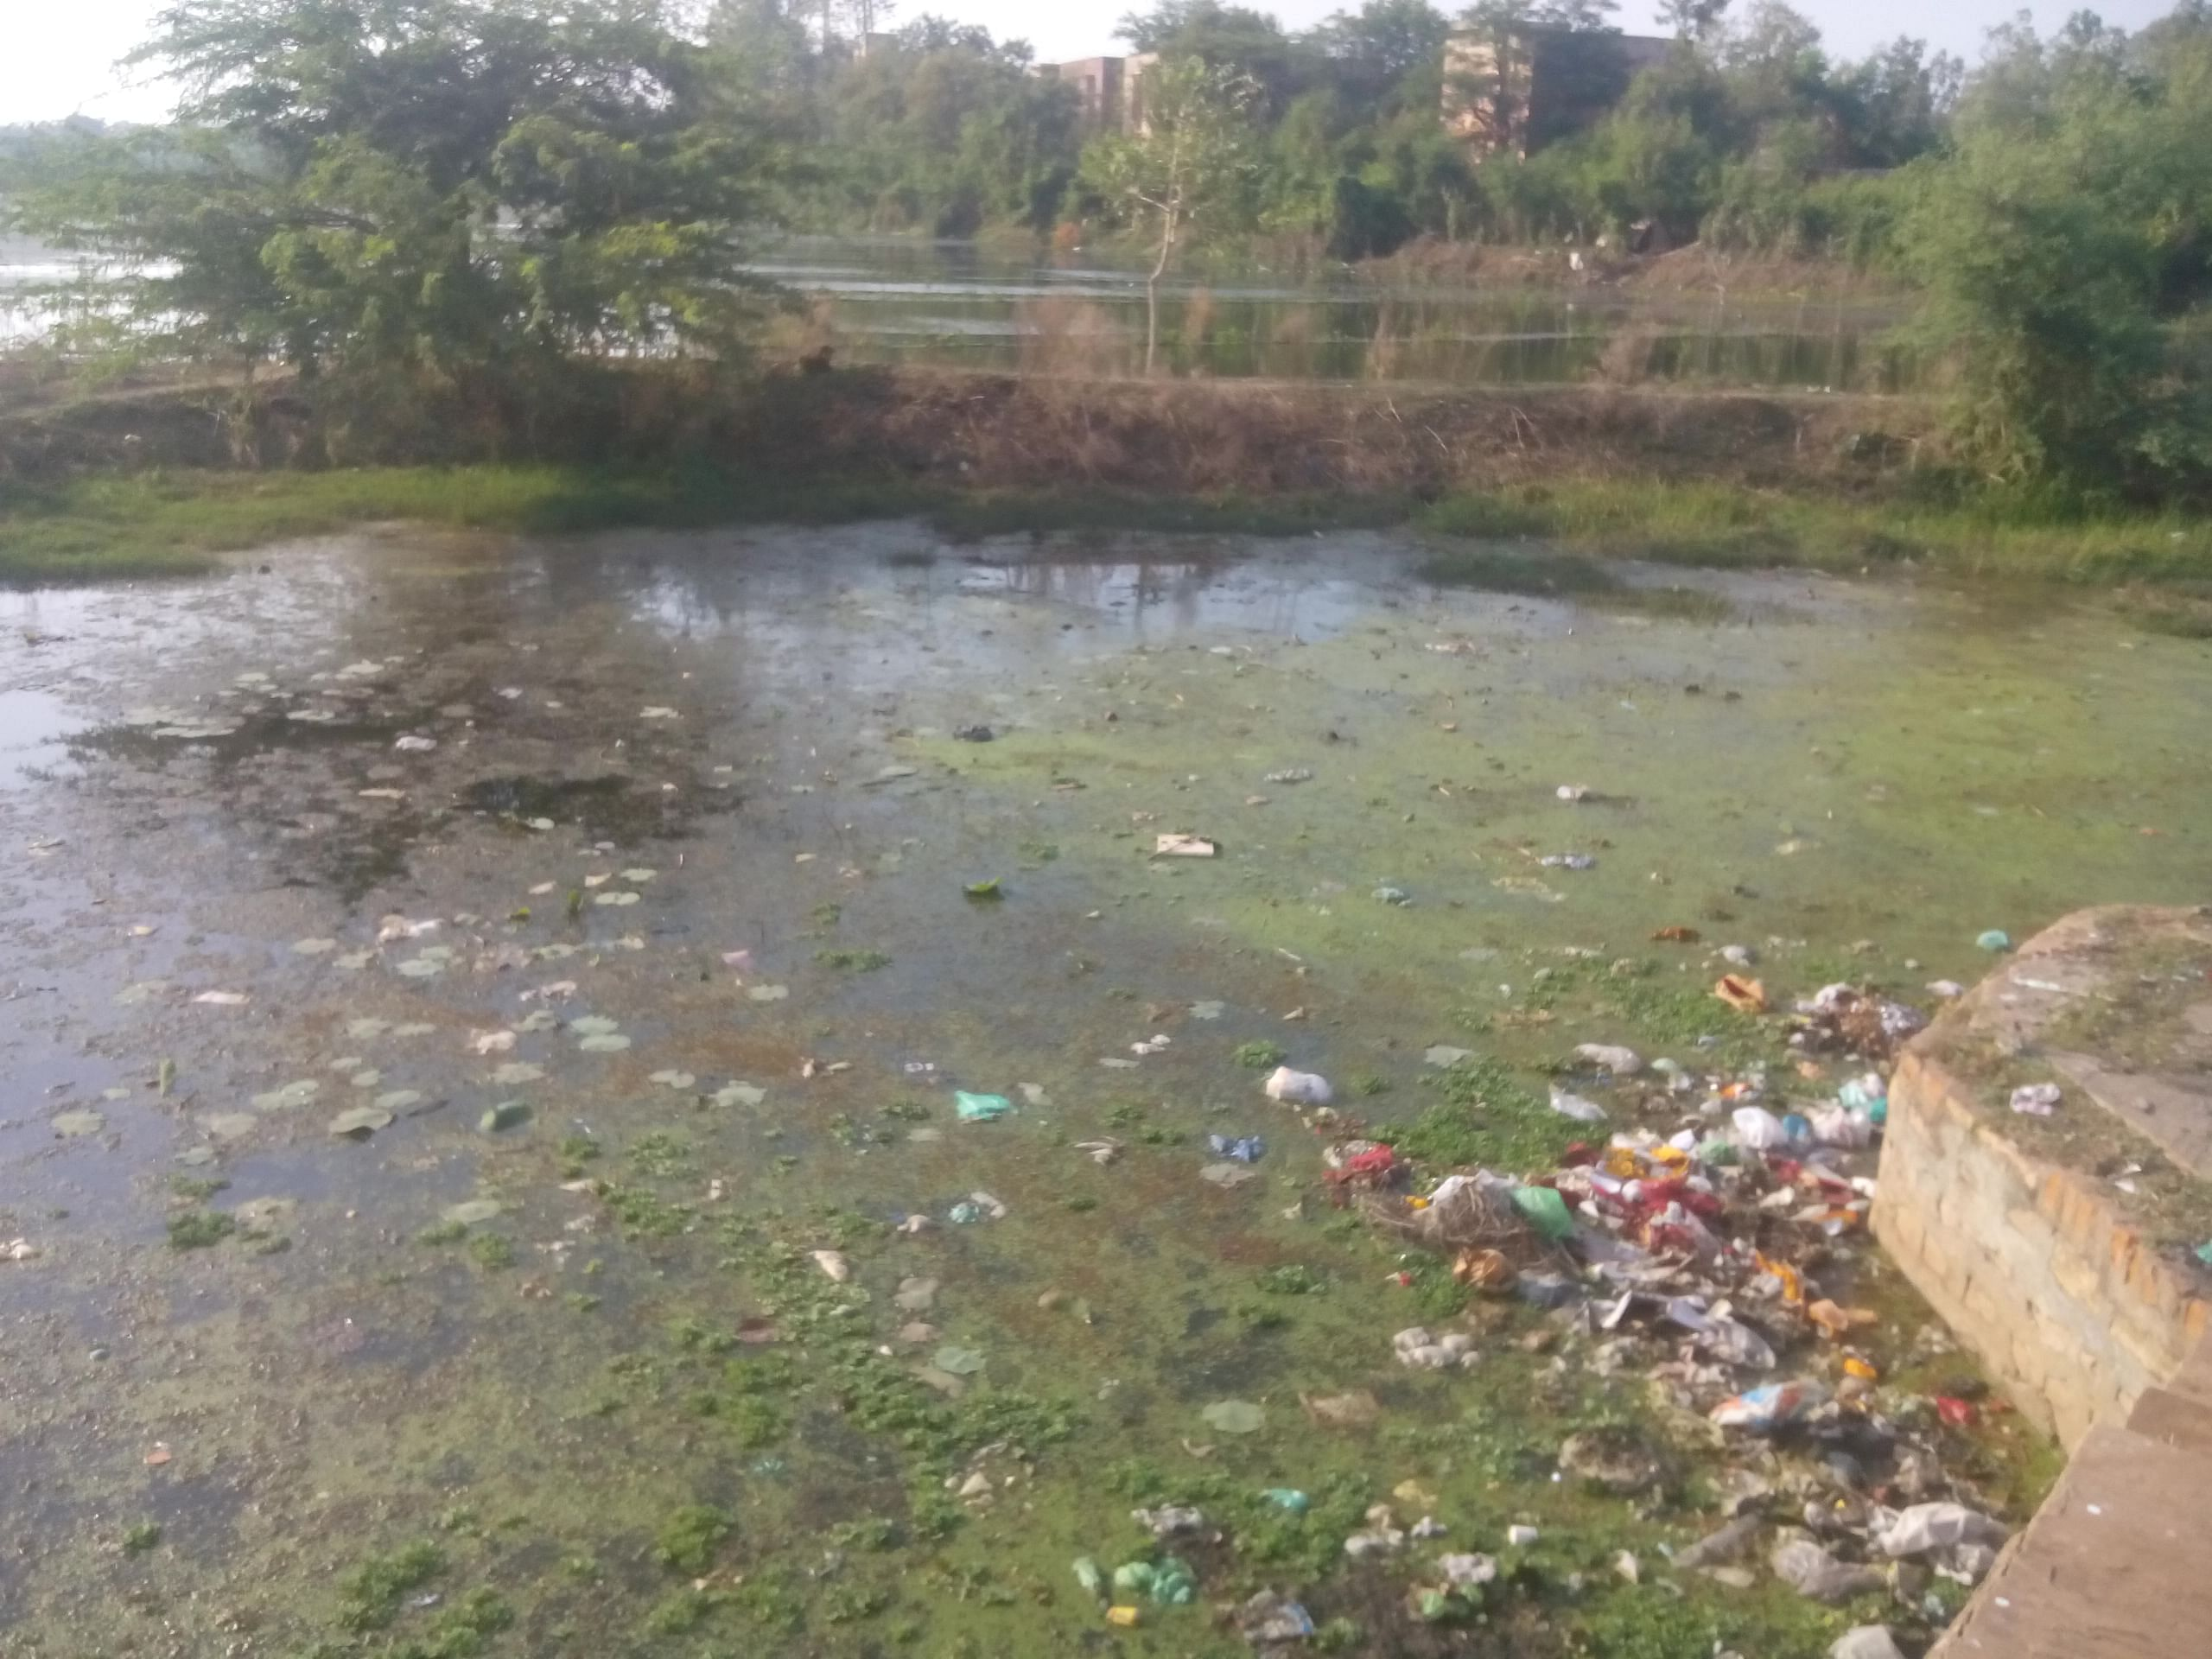 Another dilapidated lake in Shivpuri